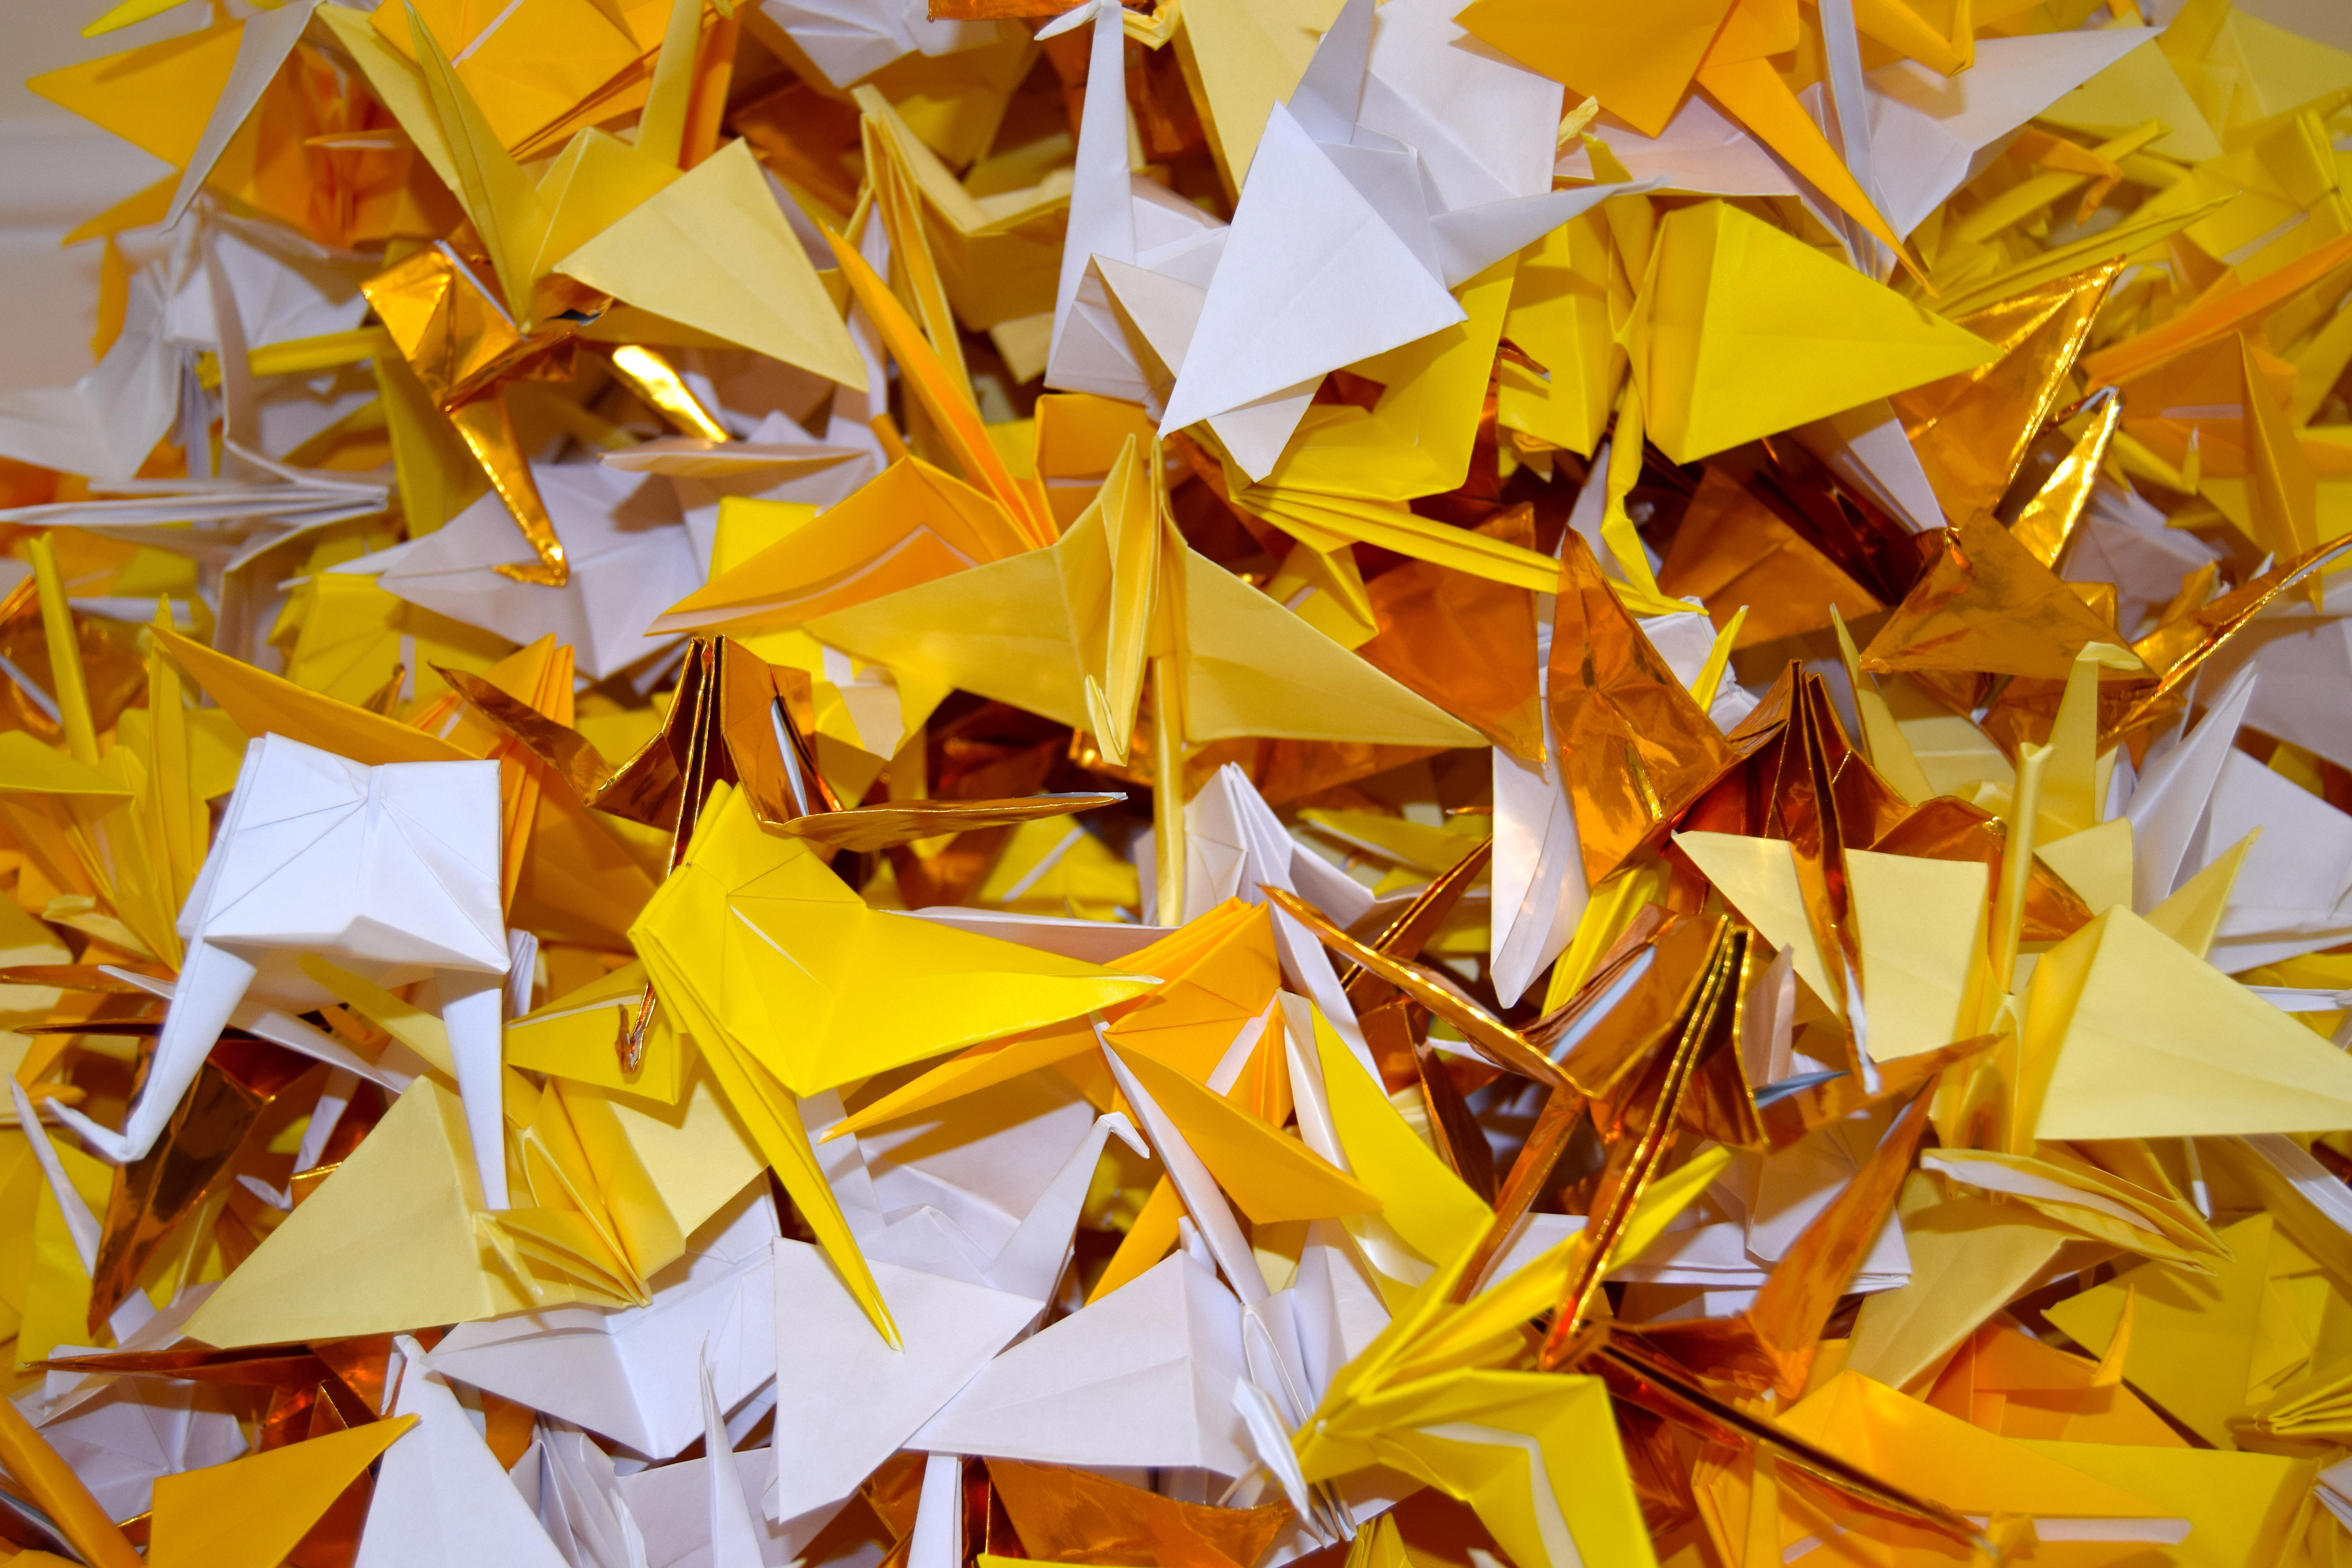 Victoria Shaw, Working on a Wish, April 2020, 1000 Origami Peace Cranes.